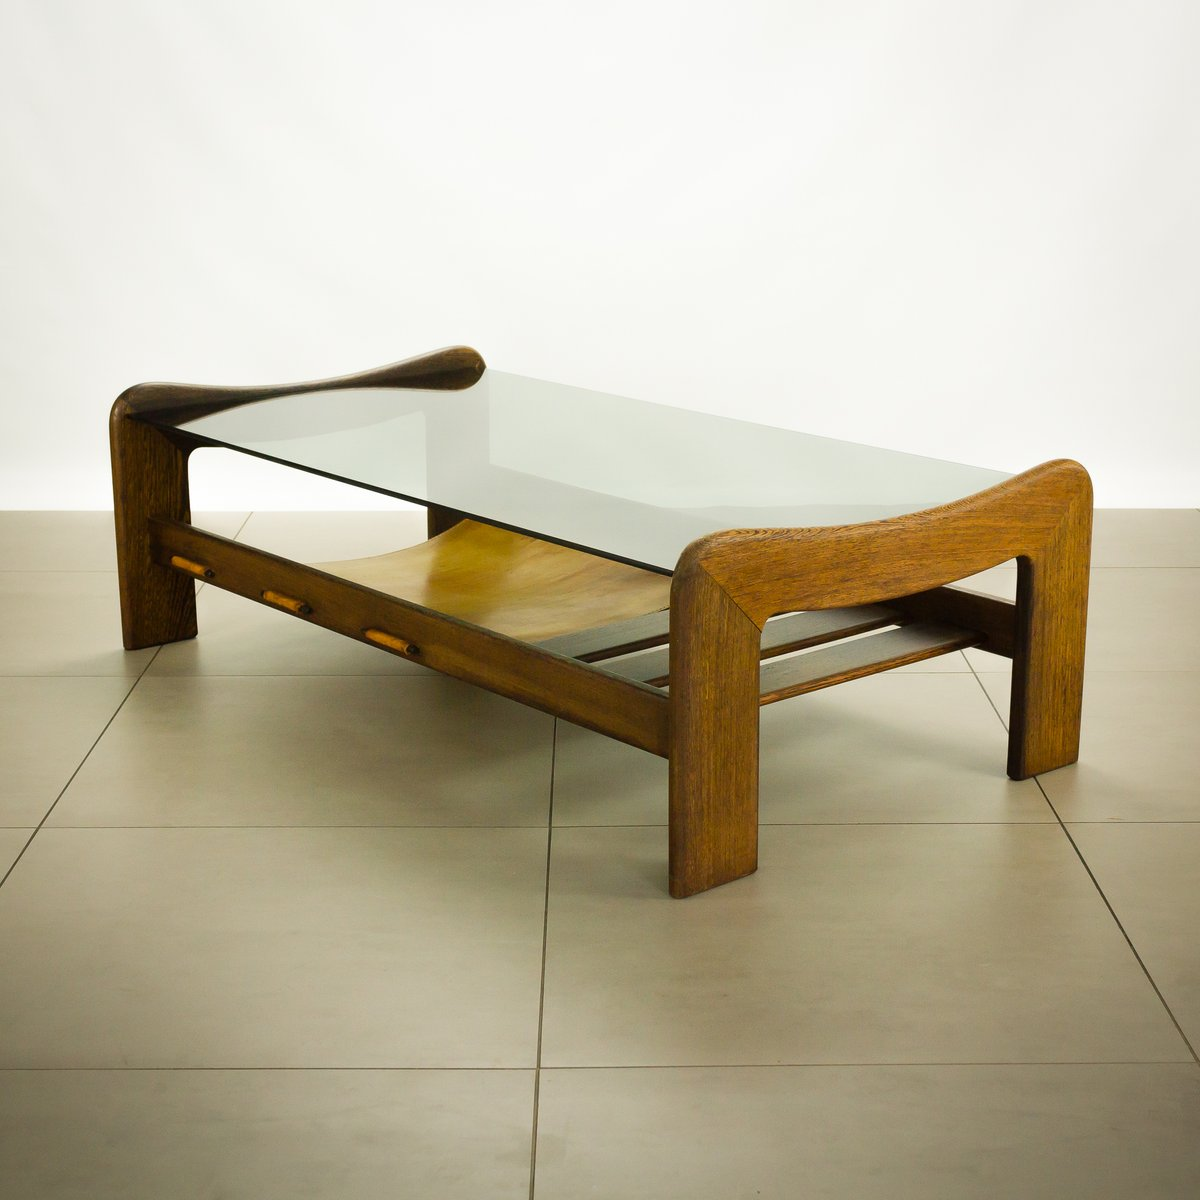 Wenge and glass coffee table from percival lafer for sale at pamono Wenge coffee tables